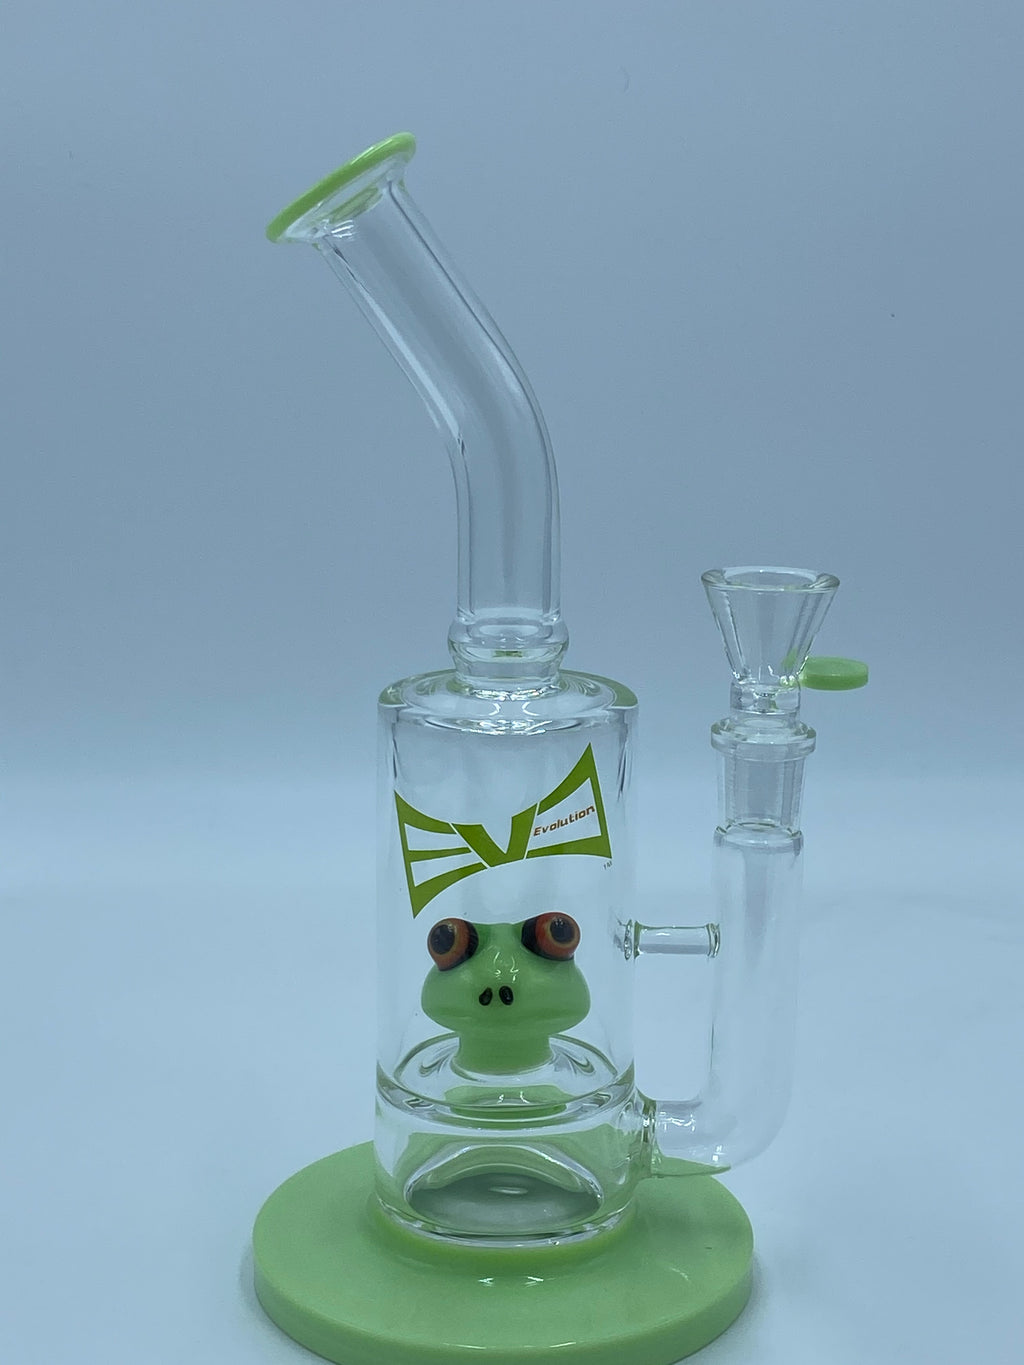 Evolution Glass SLIME KERMIT PERCOLATOR - Smoke Country - Land of the artistic glass blown bongs